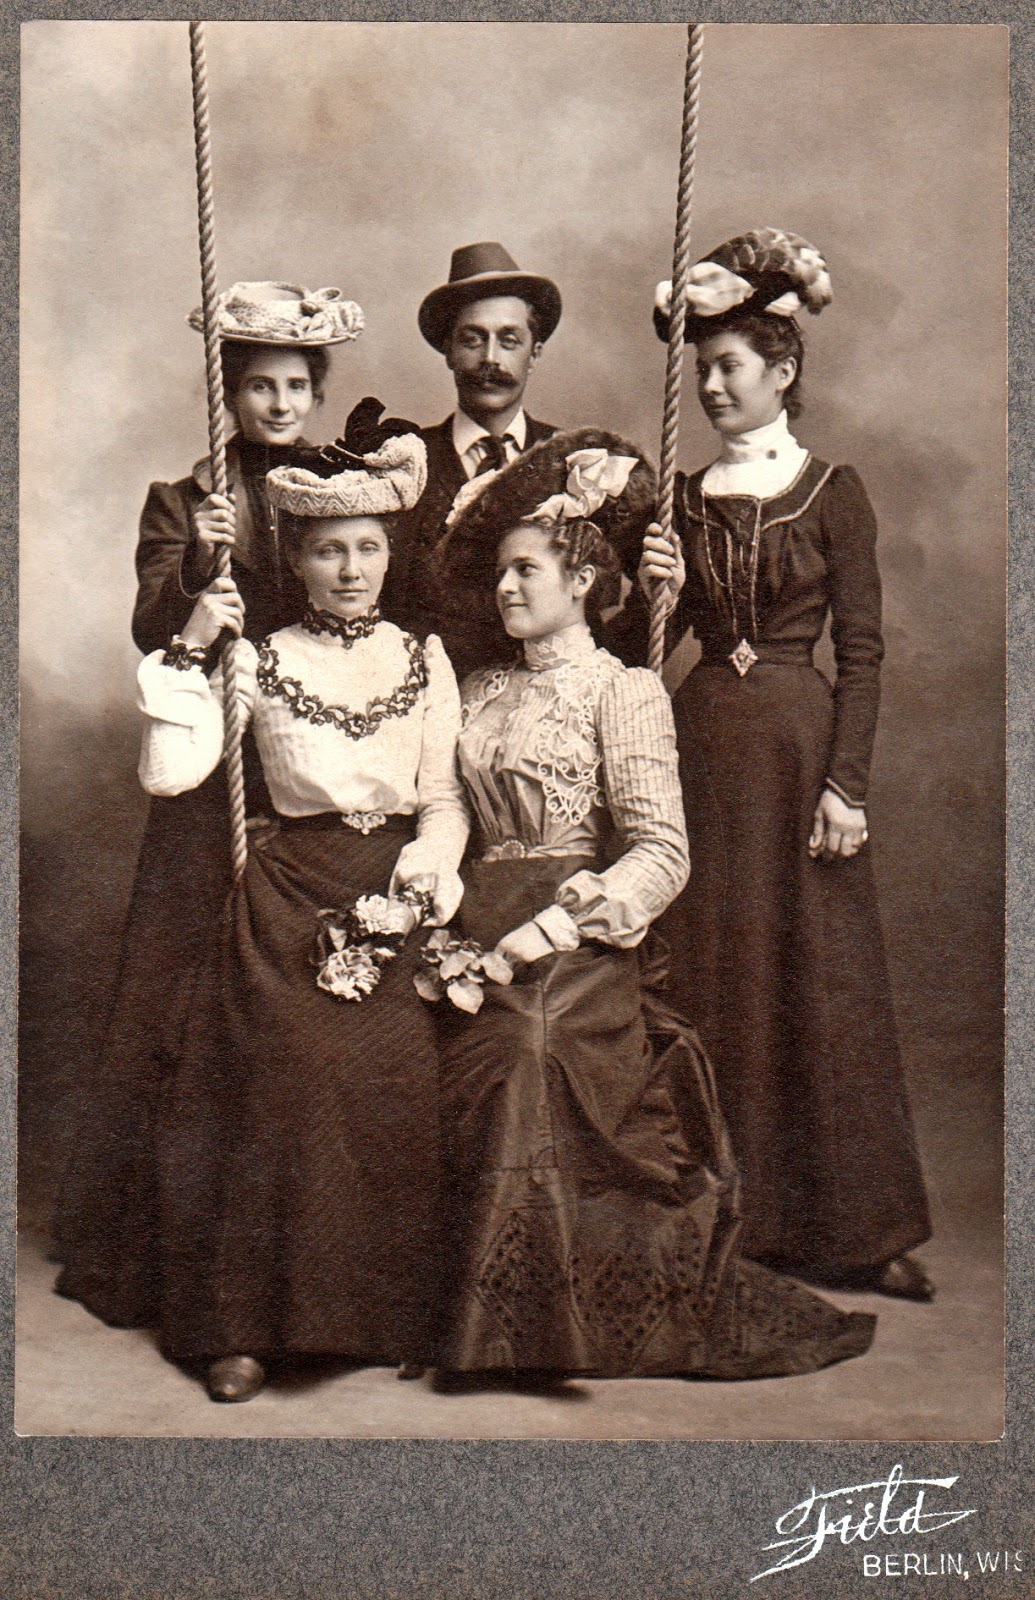 Man with four women, Berlin, Wisconsin.jpg